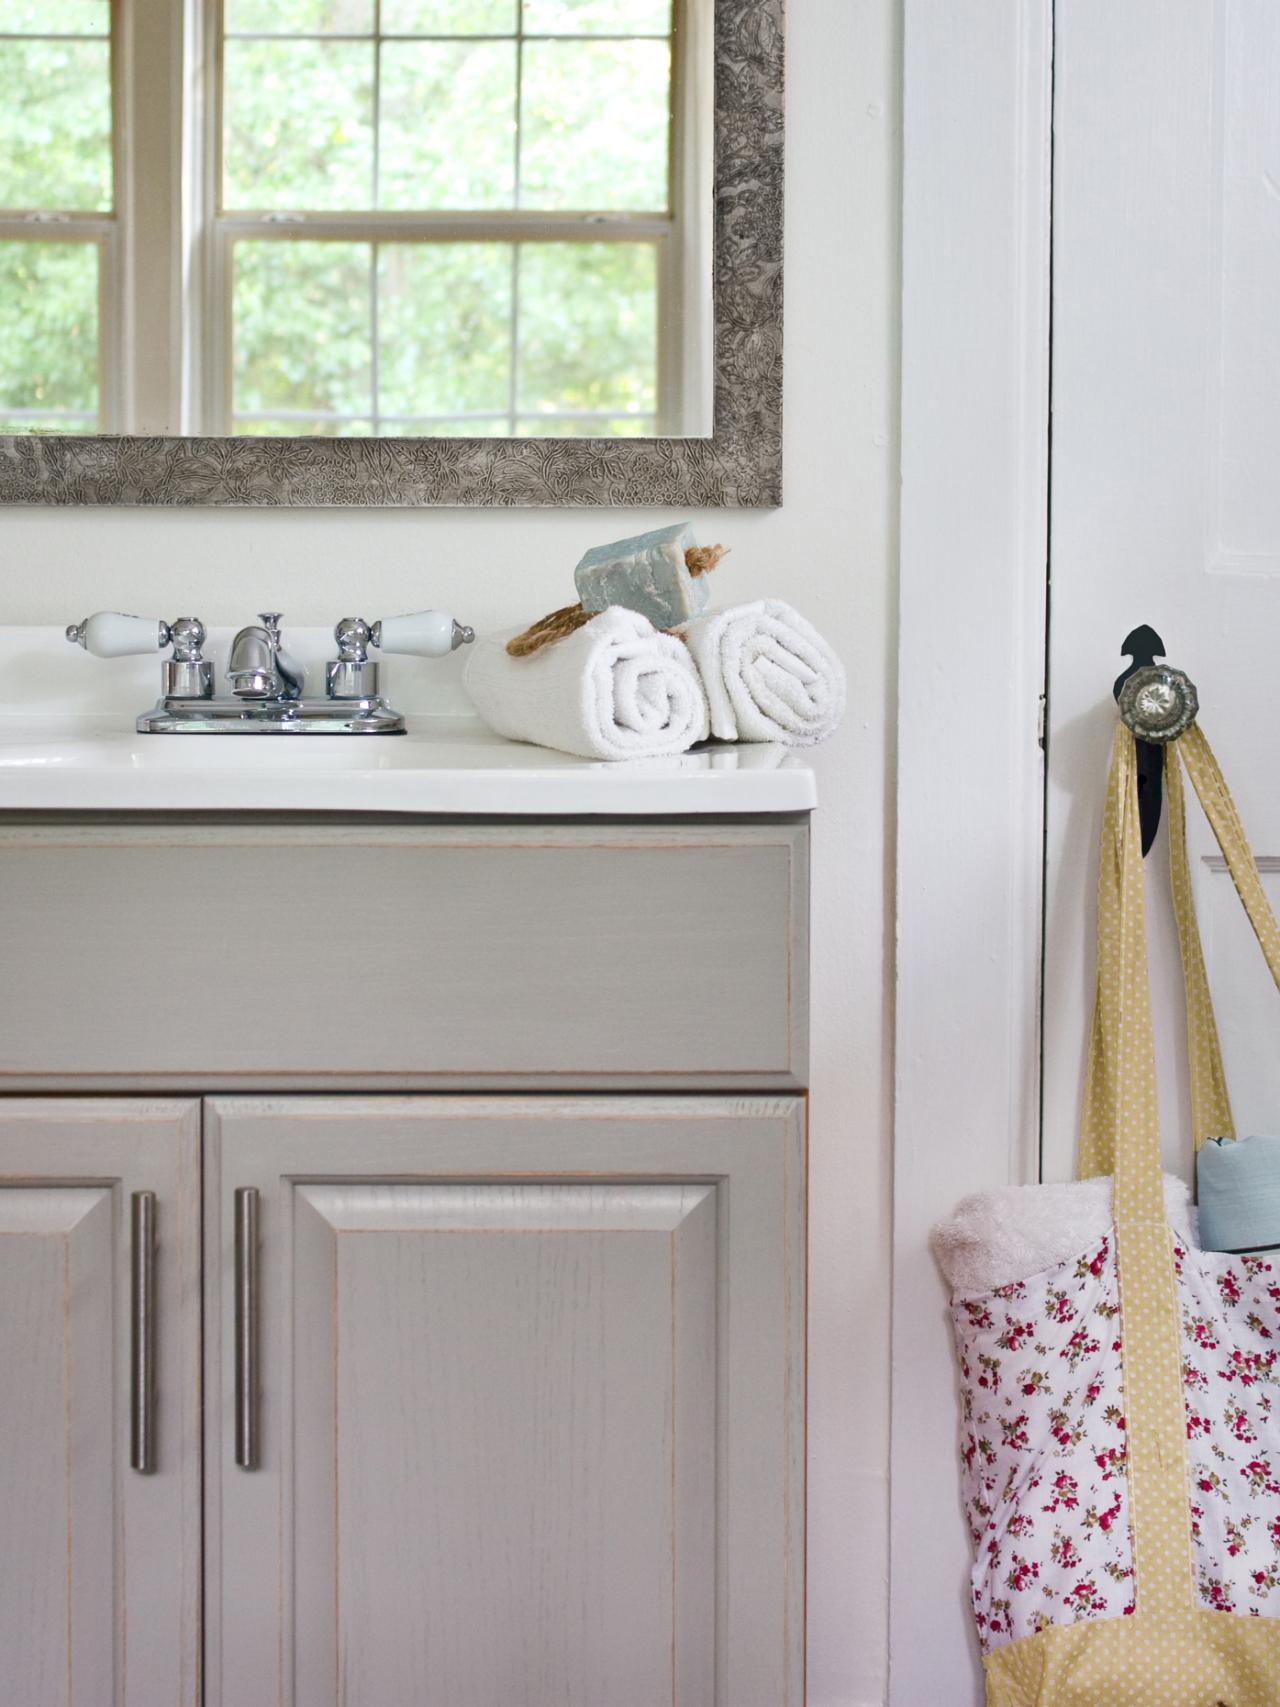 Updating A Bathroom Vanity HGTV - What paint to use on bathroom cabinets for bathroom decor ideas